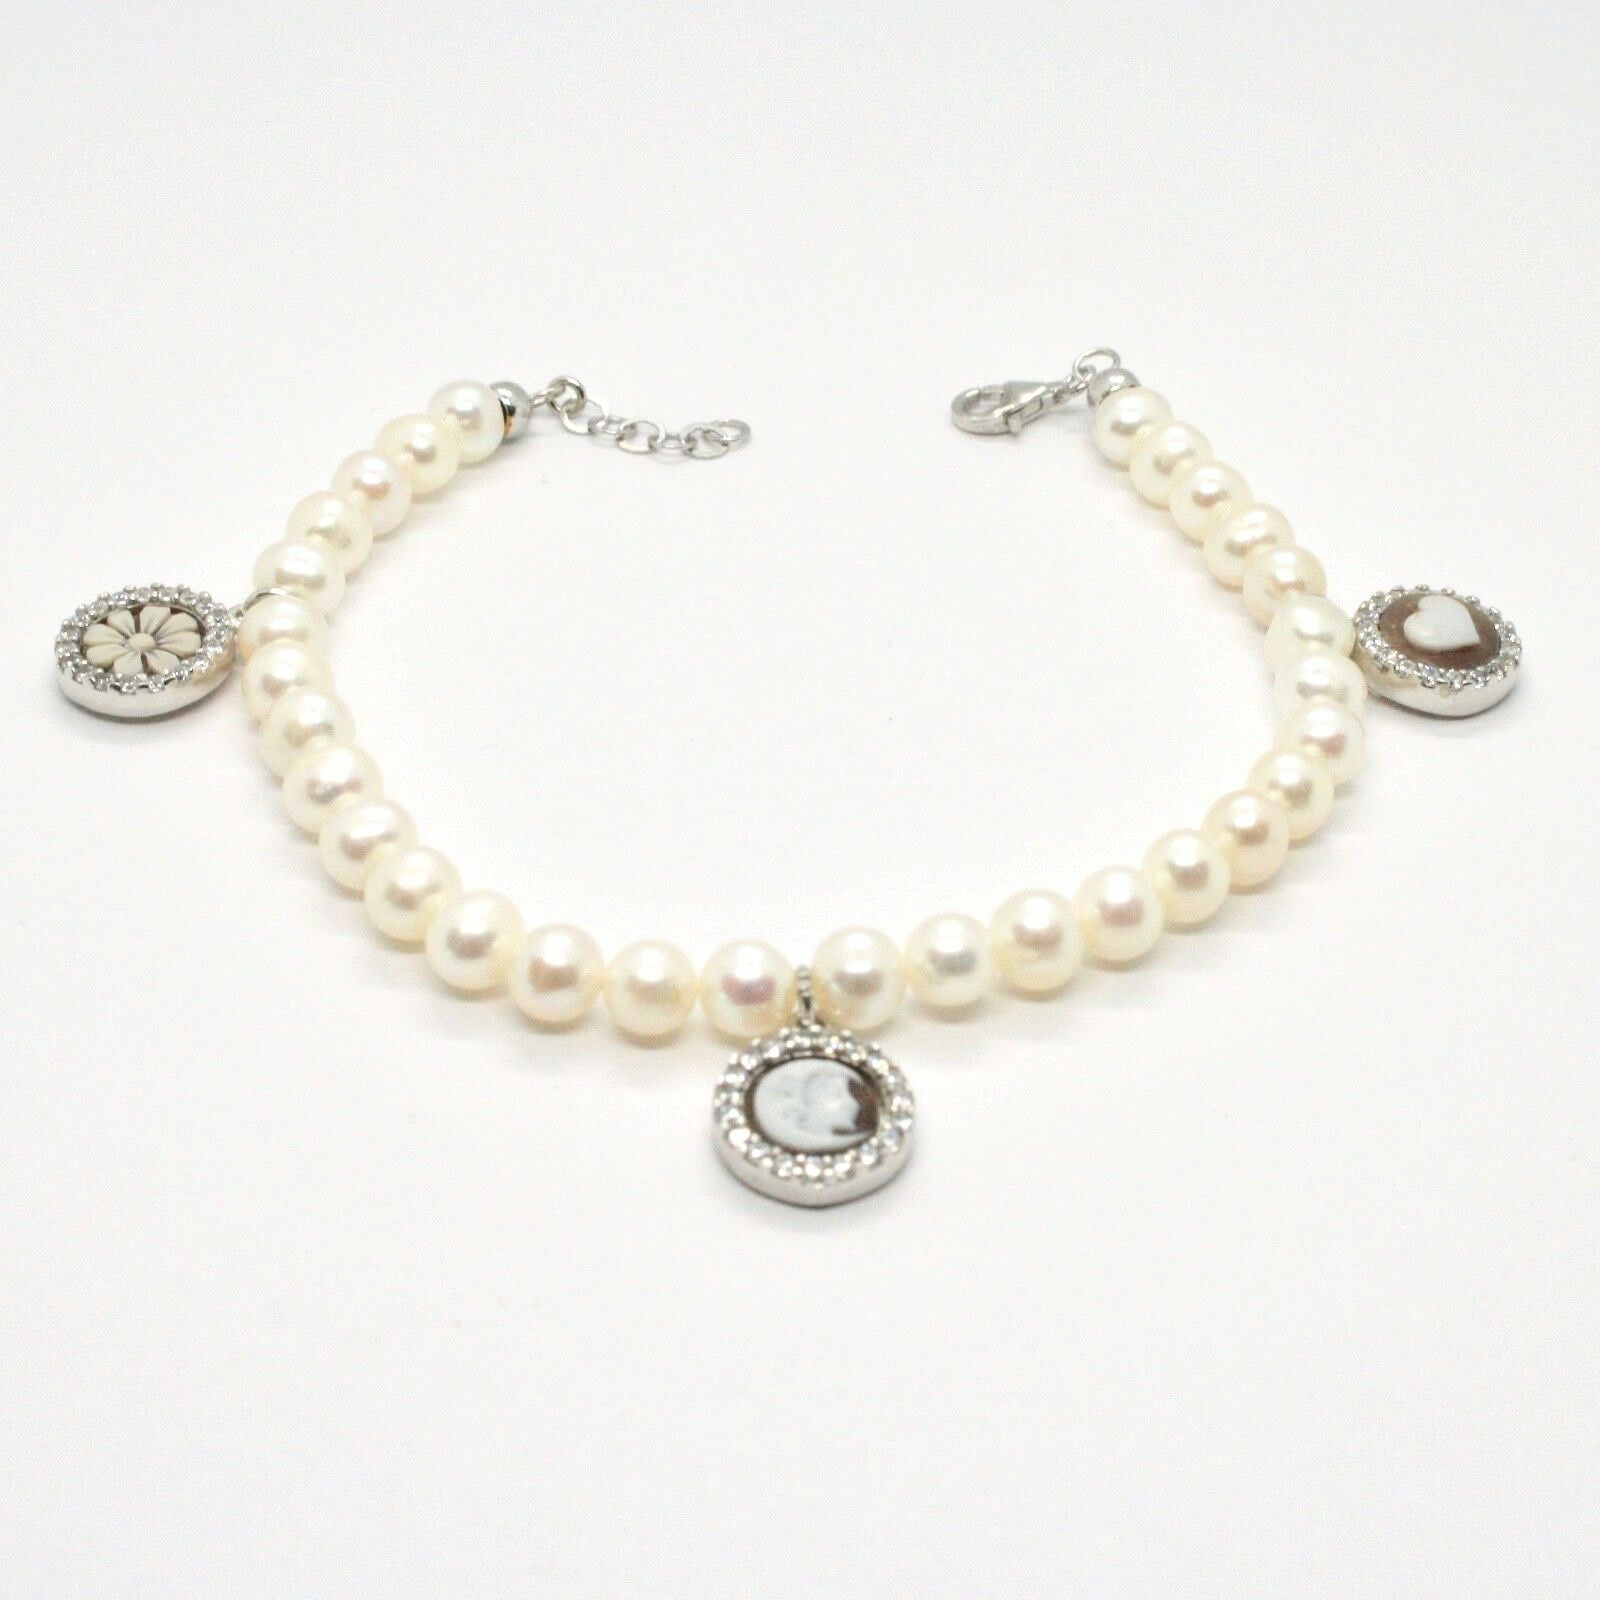 BRACELET 925 SILVER WITH PEARLS OF WATER DOLCE CAMEO CAMEO ZIRCON CUBIC